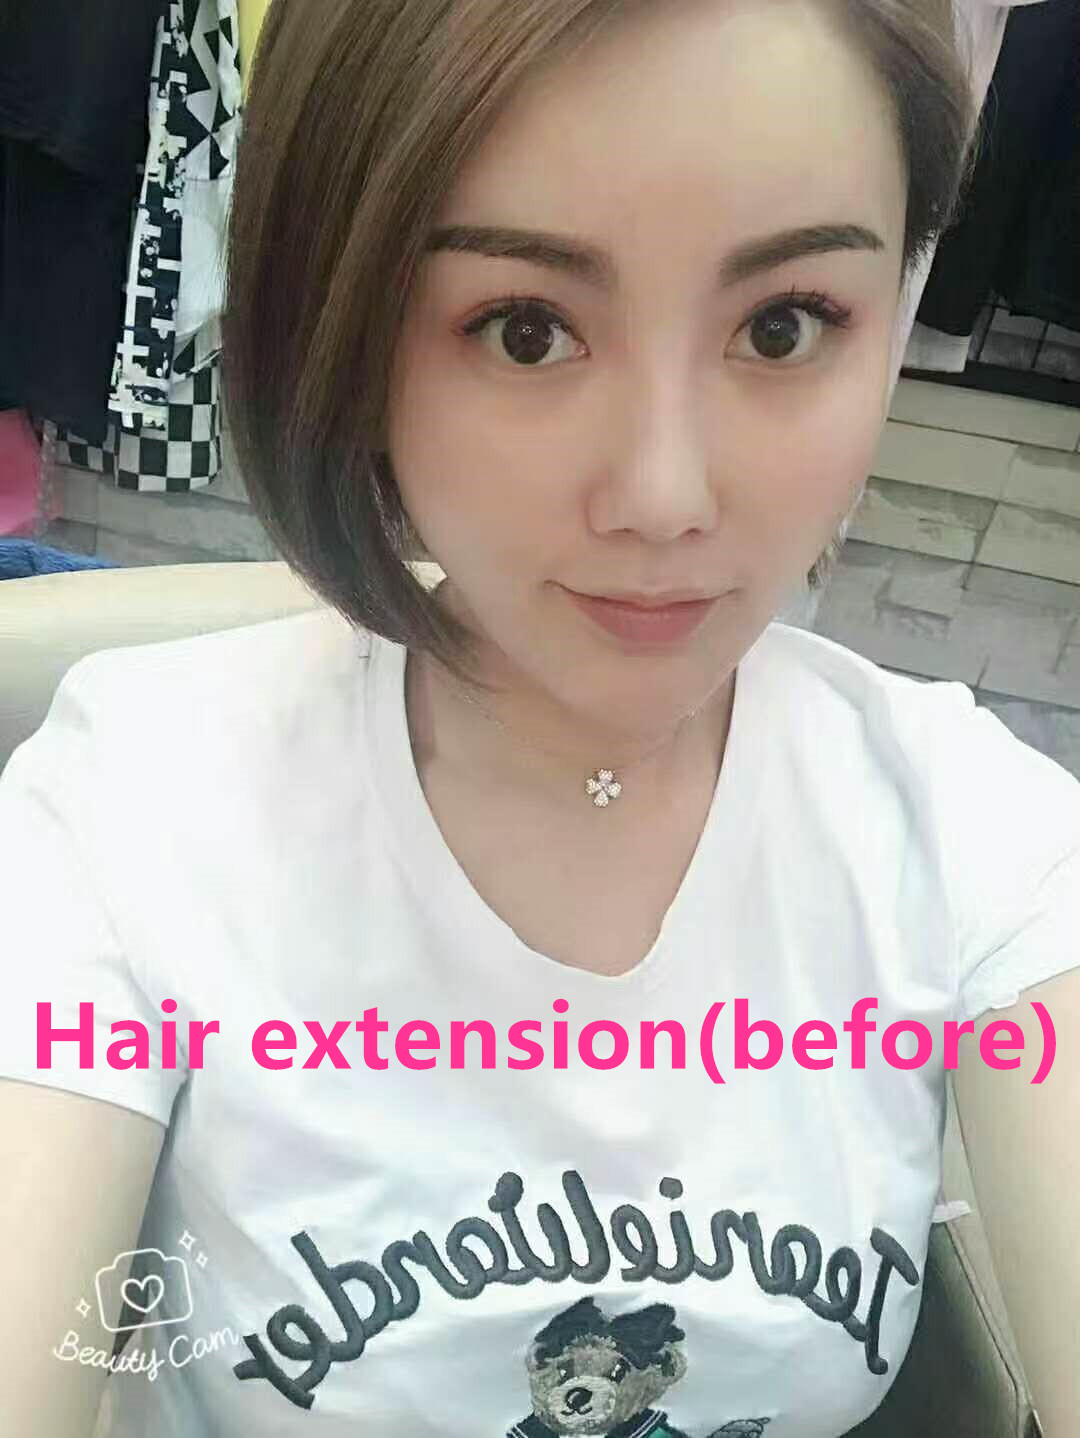 Hair extension(before).jpg